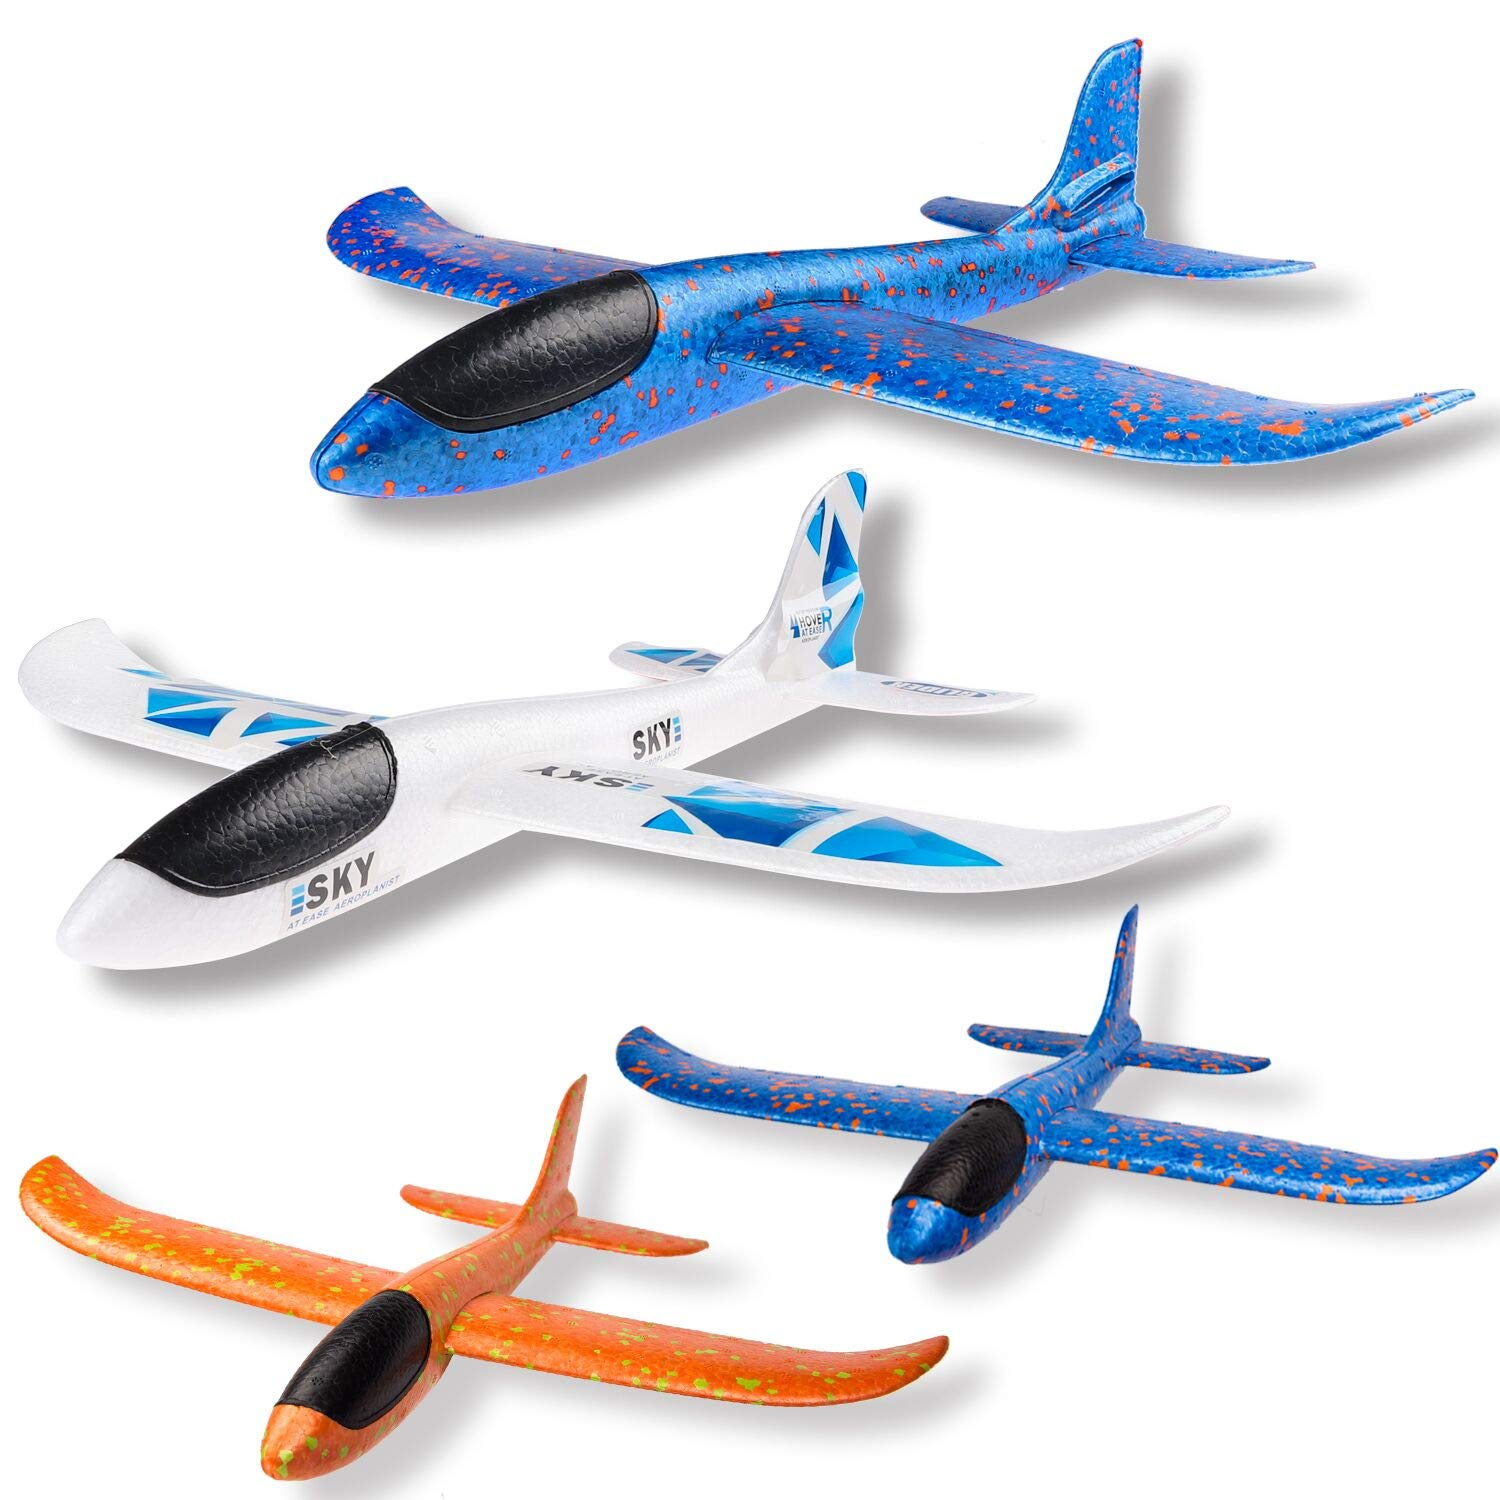 WATINC 4 pcs Airplane 17inch and 13.5inch Manual Foam Flying Glider Planes Throwing Fun Challenging Games Outdoor Sports Toy Model Air Plane Two Flight Modes Blue Orange White Aircraft for Boys Girls by WATINC